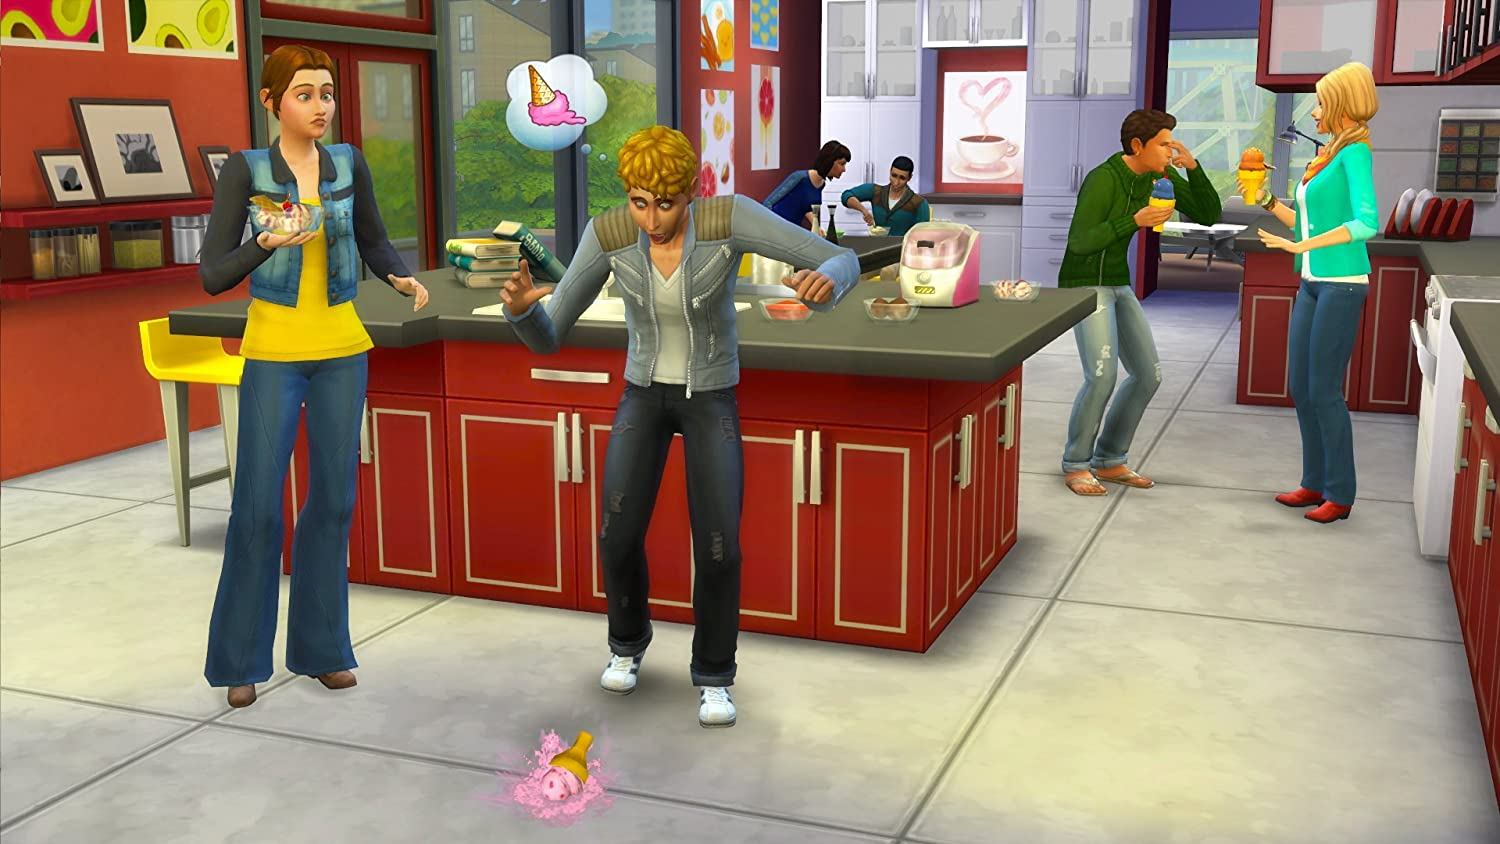 image cool kitchen. amazon.com: the sims 4 cool kitchen stuff [online game code]: video games image m